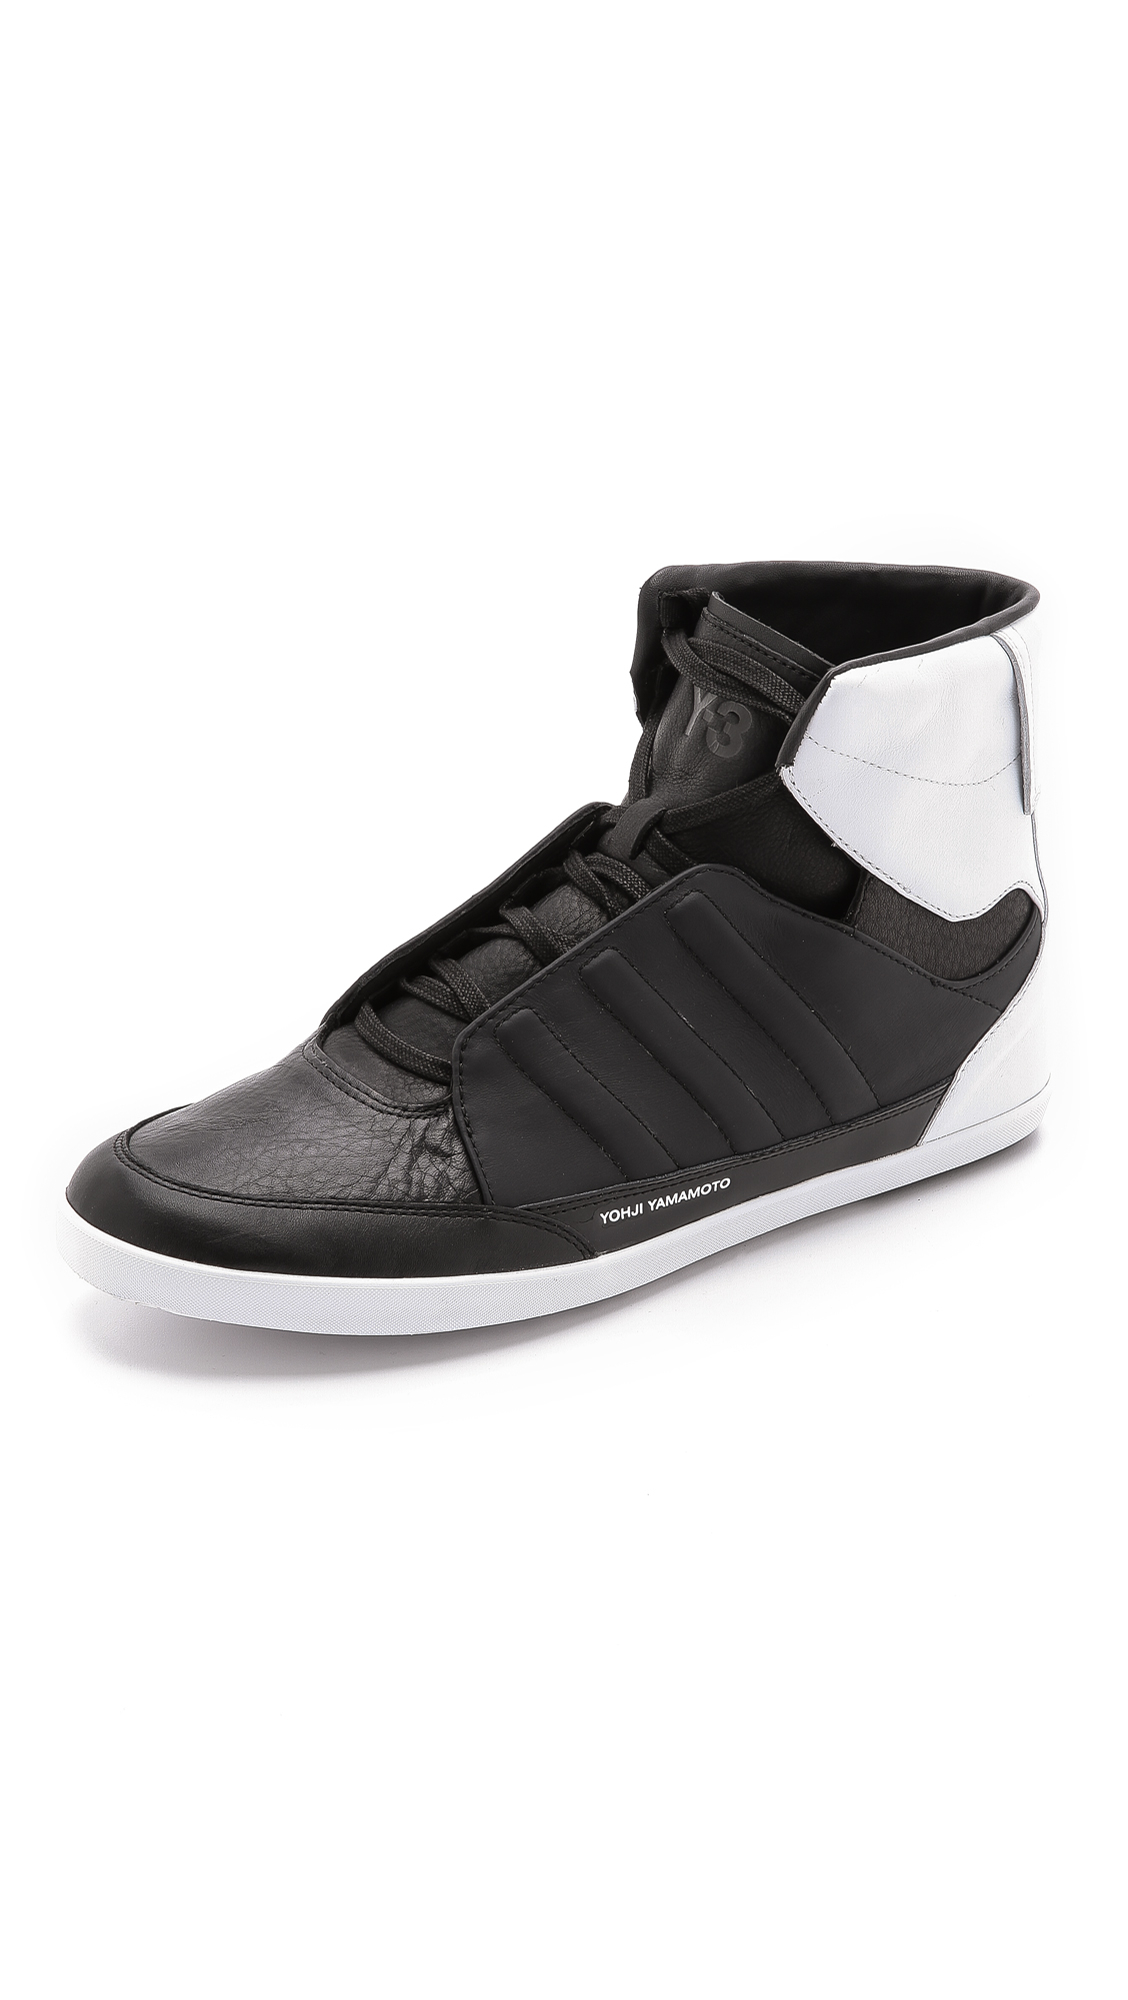 1f5b18c4b Y-3 Honja High in Black for Men - Lyst